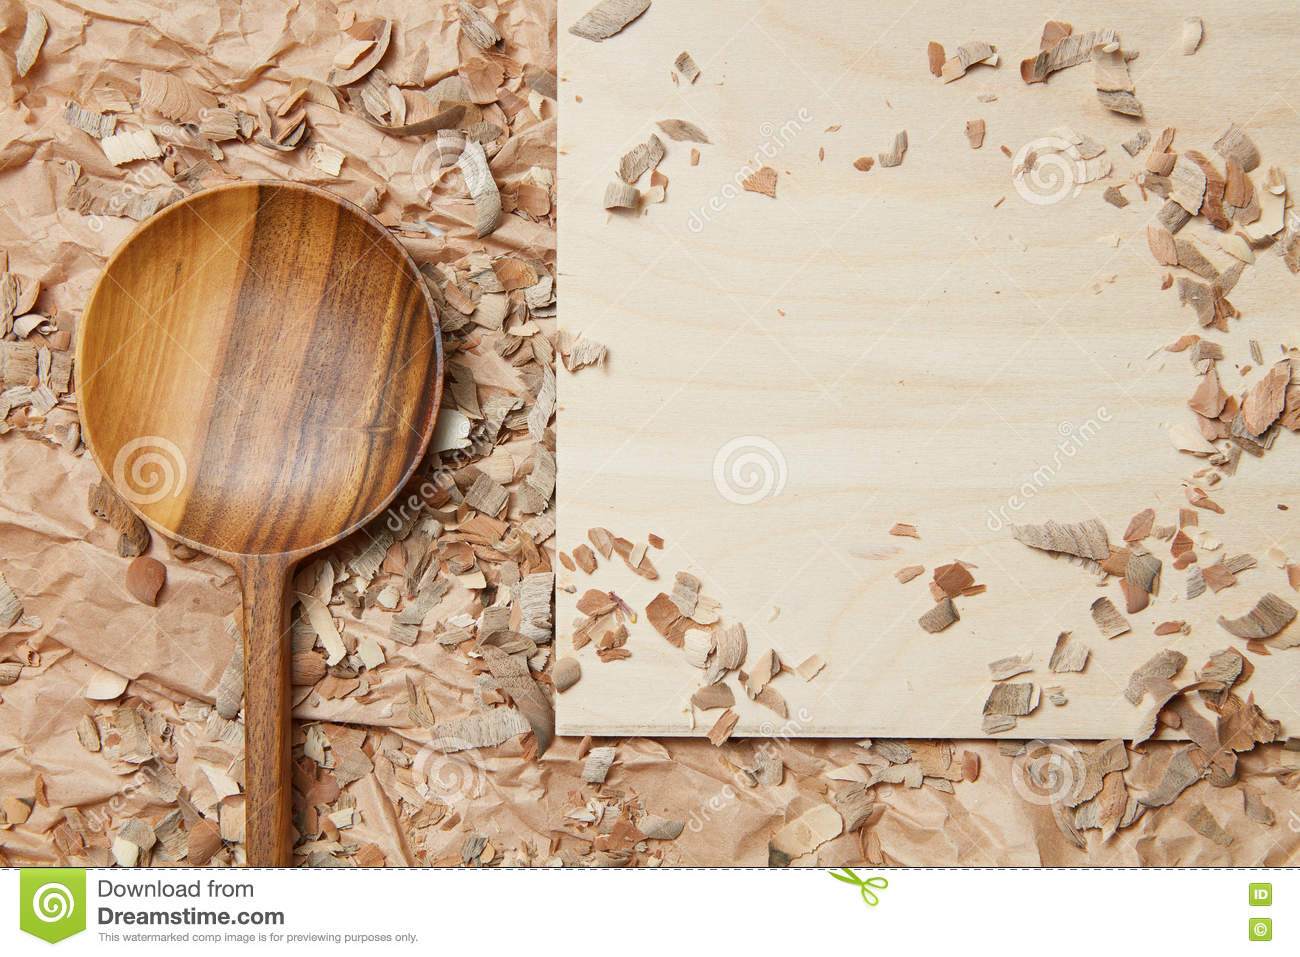 Wooden spoon on parchment